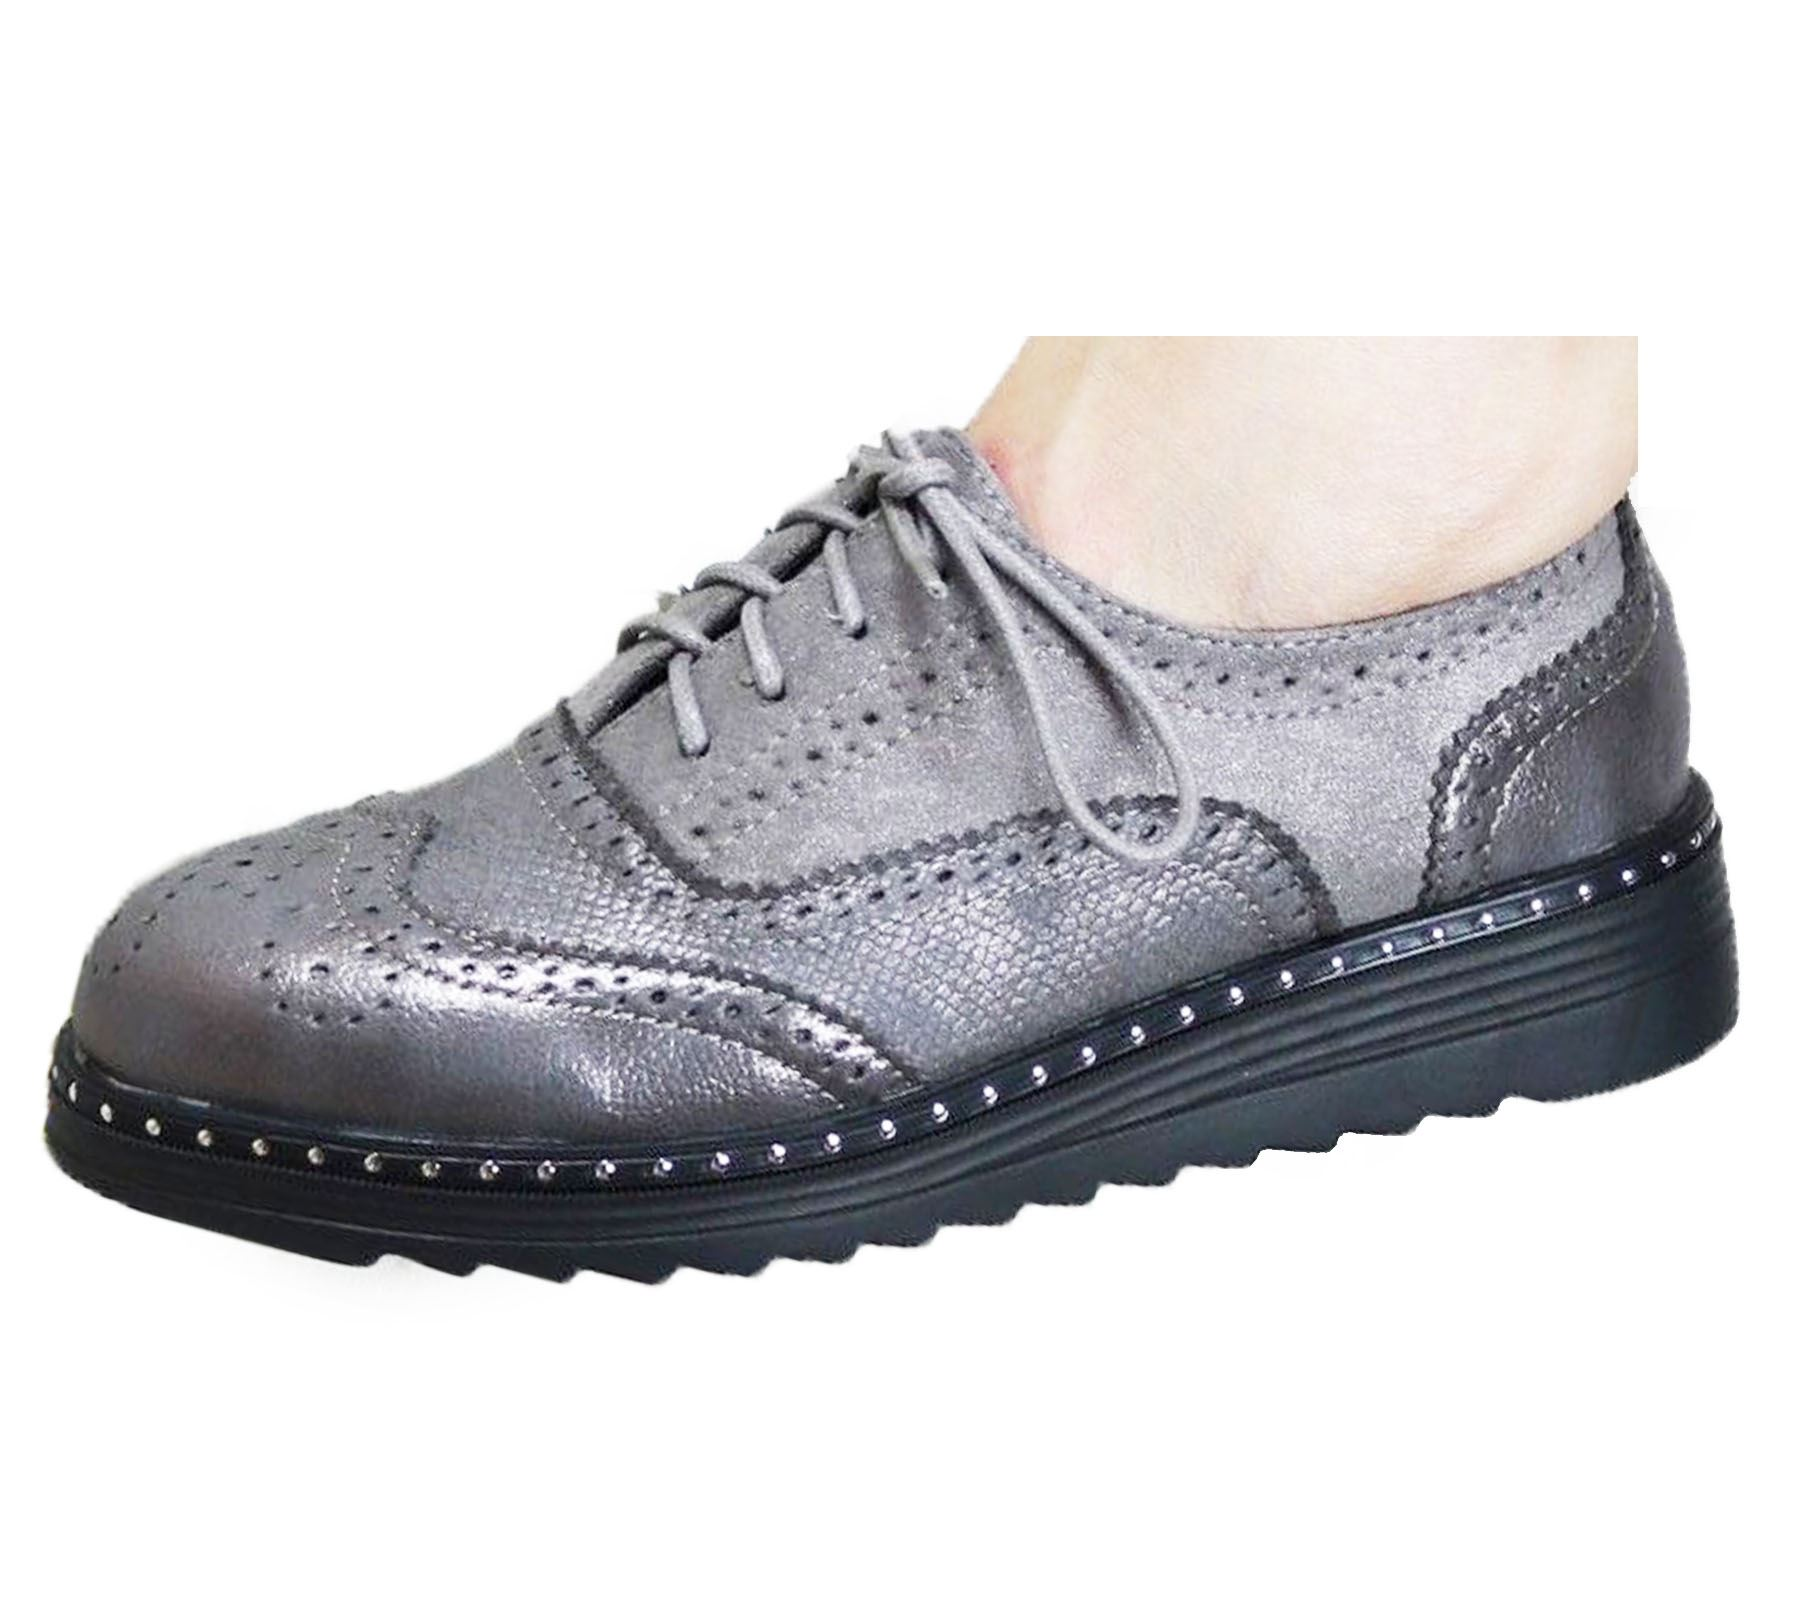 Ladies-Brogue-Lace-Up-Shoes-Womens-Oxford-Smart-Office-Loafers-Shoes miniatura 15